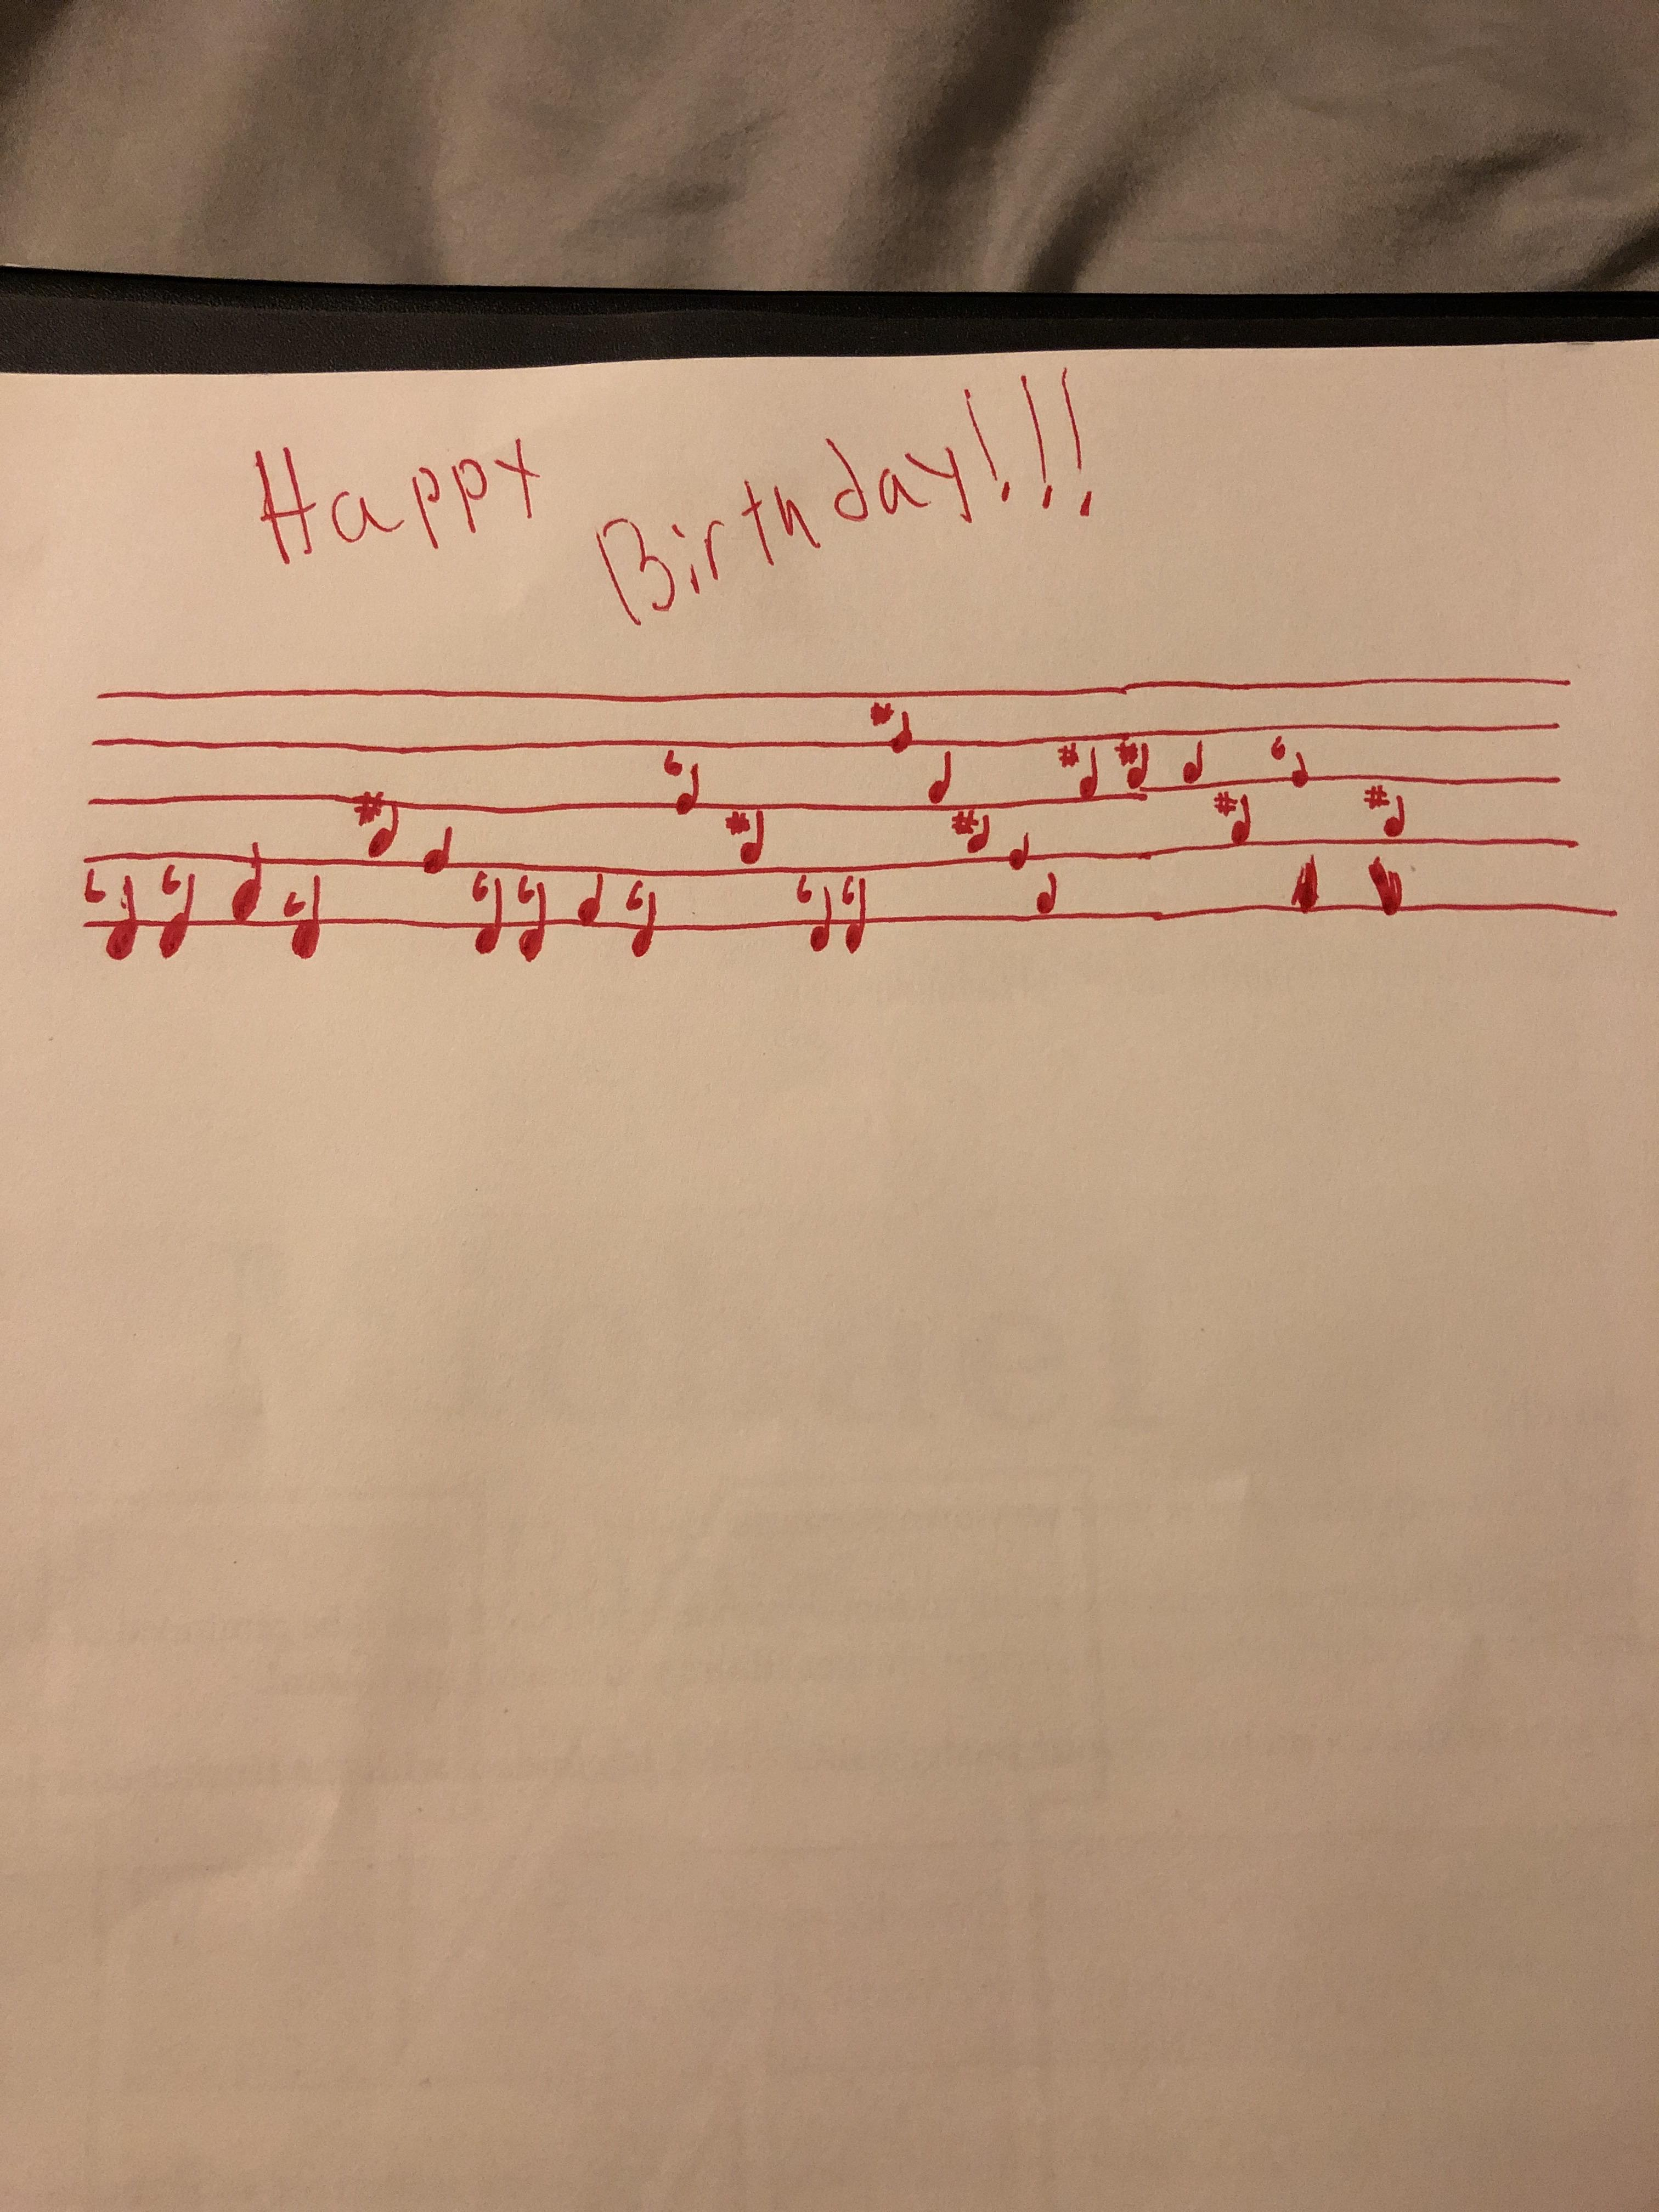 I Tried Making The Happy Birthday Song By Singing And Matching What I Sang With A Note On The Trumpet It S My First Time Doing Anything Like This What Do Y All Think